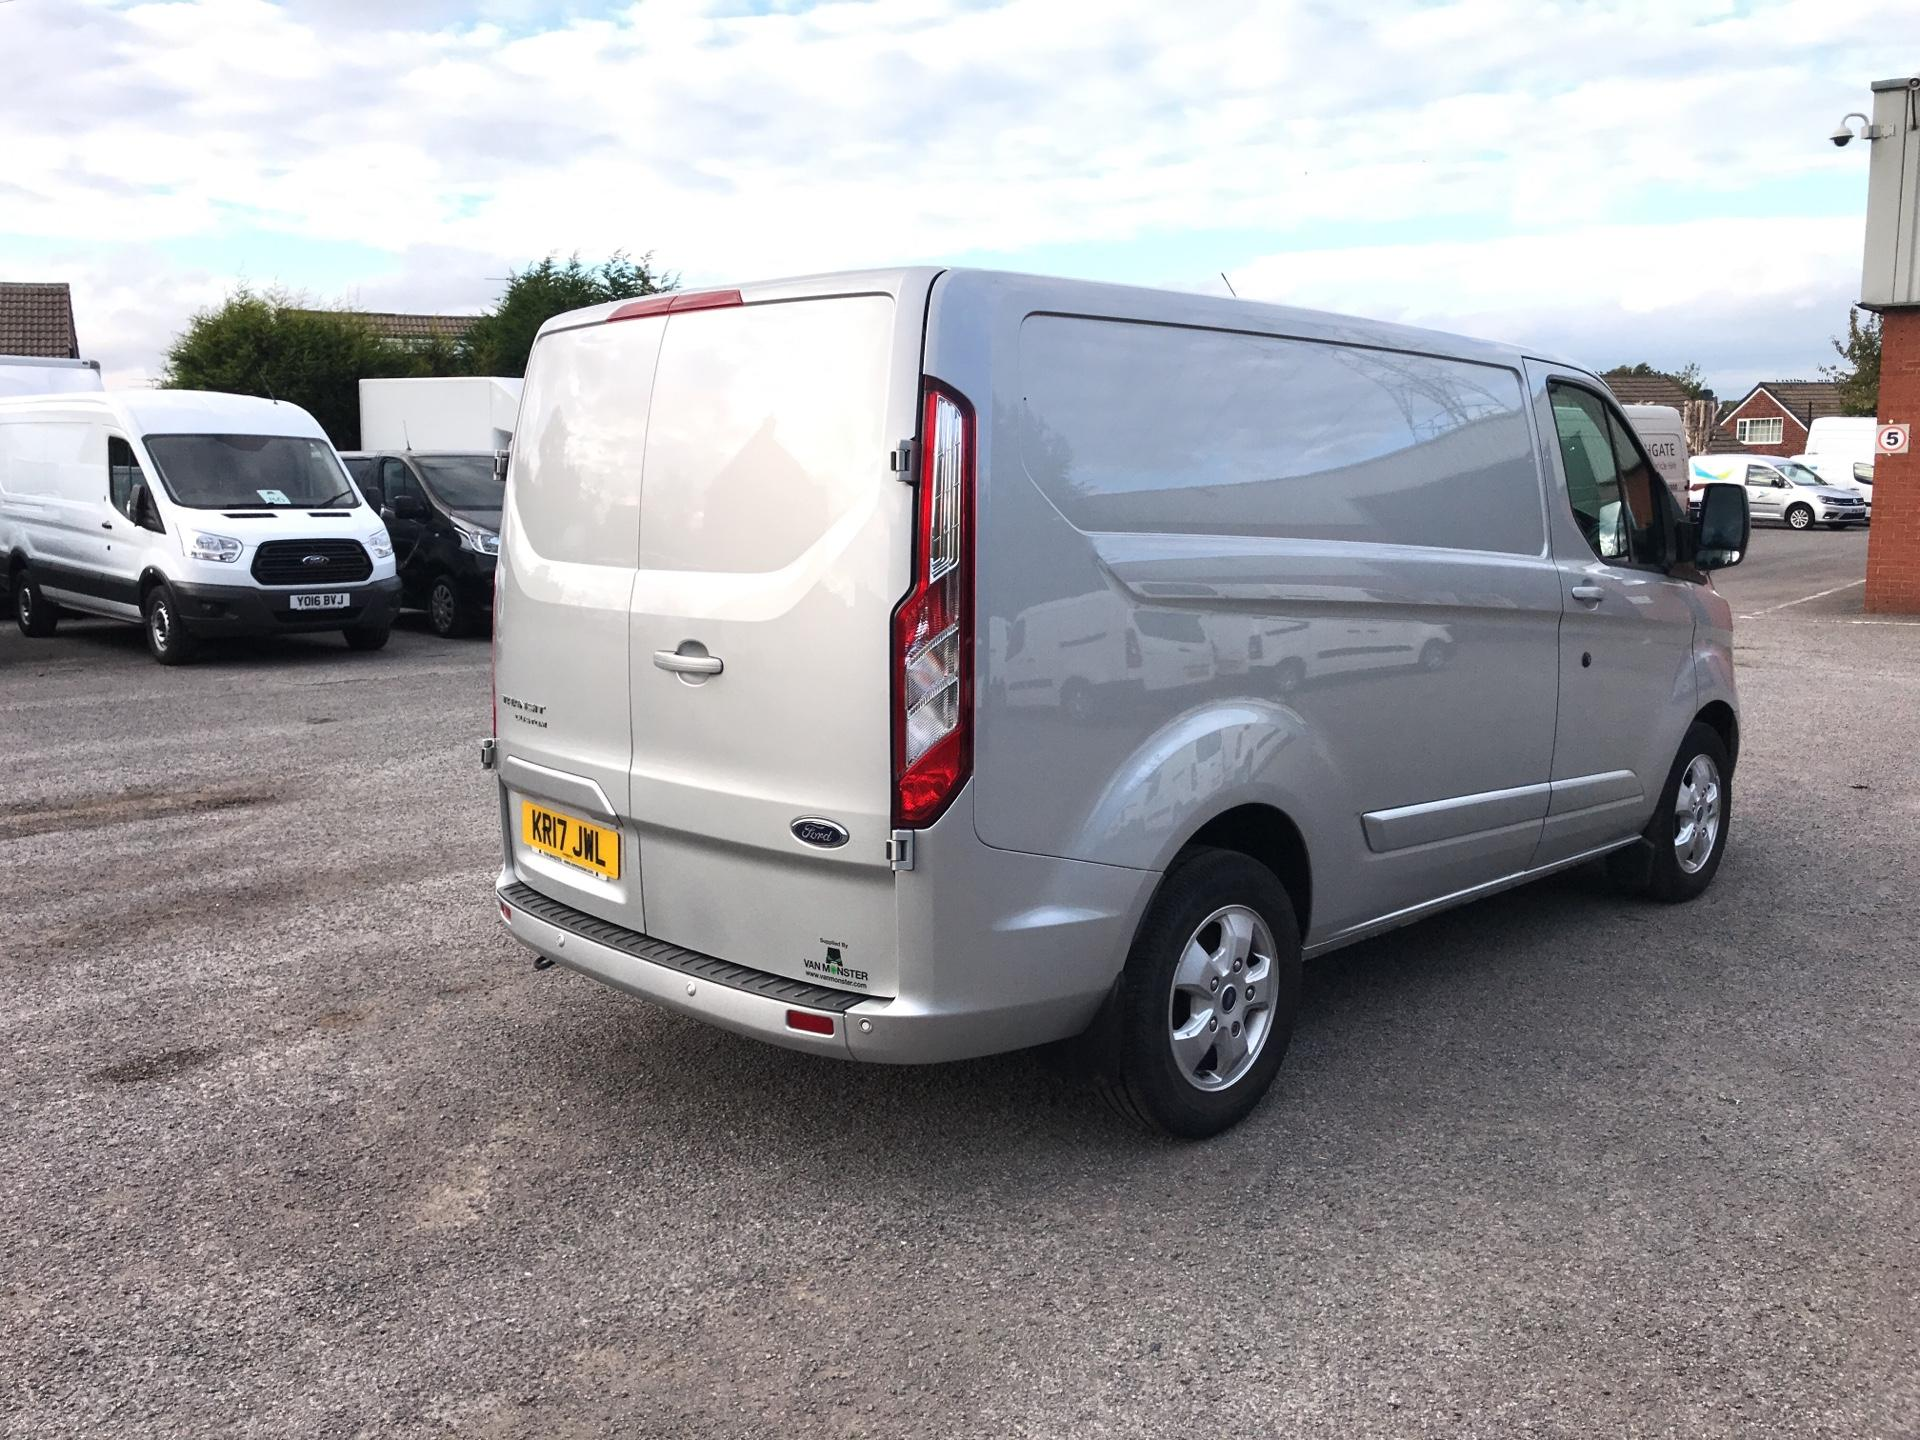 2017 Ford Transit Custom 270 L1 DIESEL FWD 2.0 TDCI 130PS LOW ROOF LIMITED VAN EURO 6 (KR17JWL) Image 3